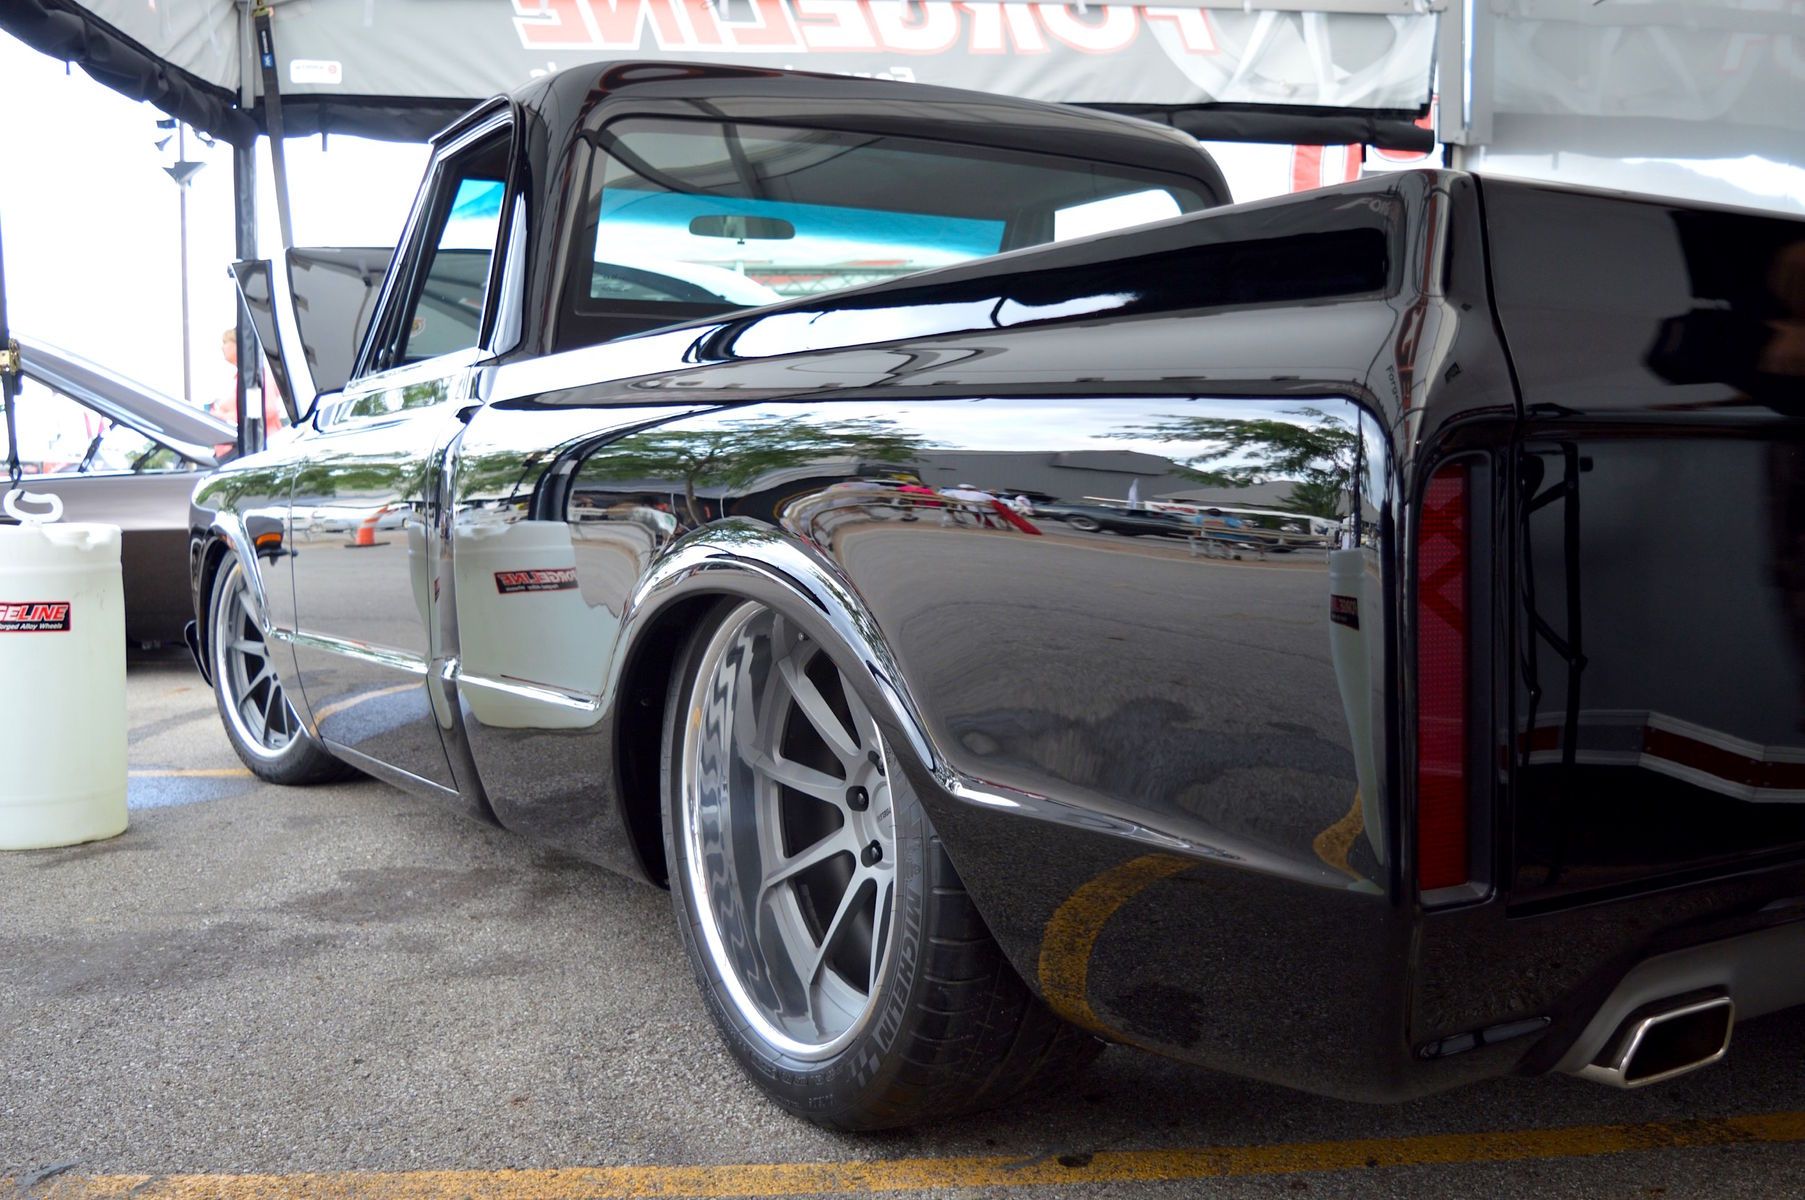 1970 Chevrolet C-10 | Steve & Danielle Locklin's '70 Chevy C10 on Forgeline RB3C at Goodguys 20th PPG Nationals